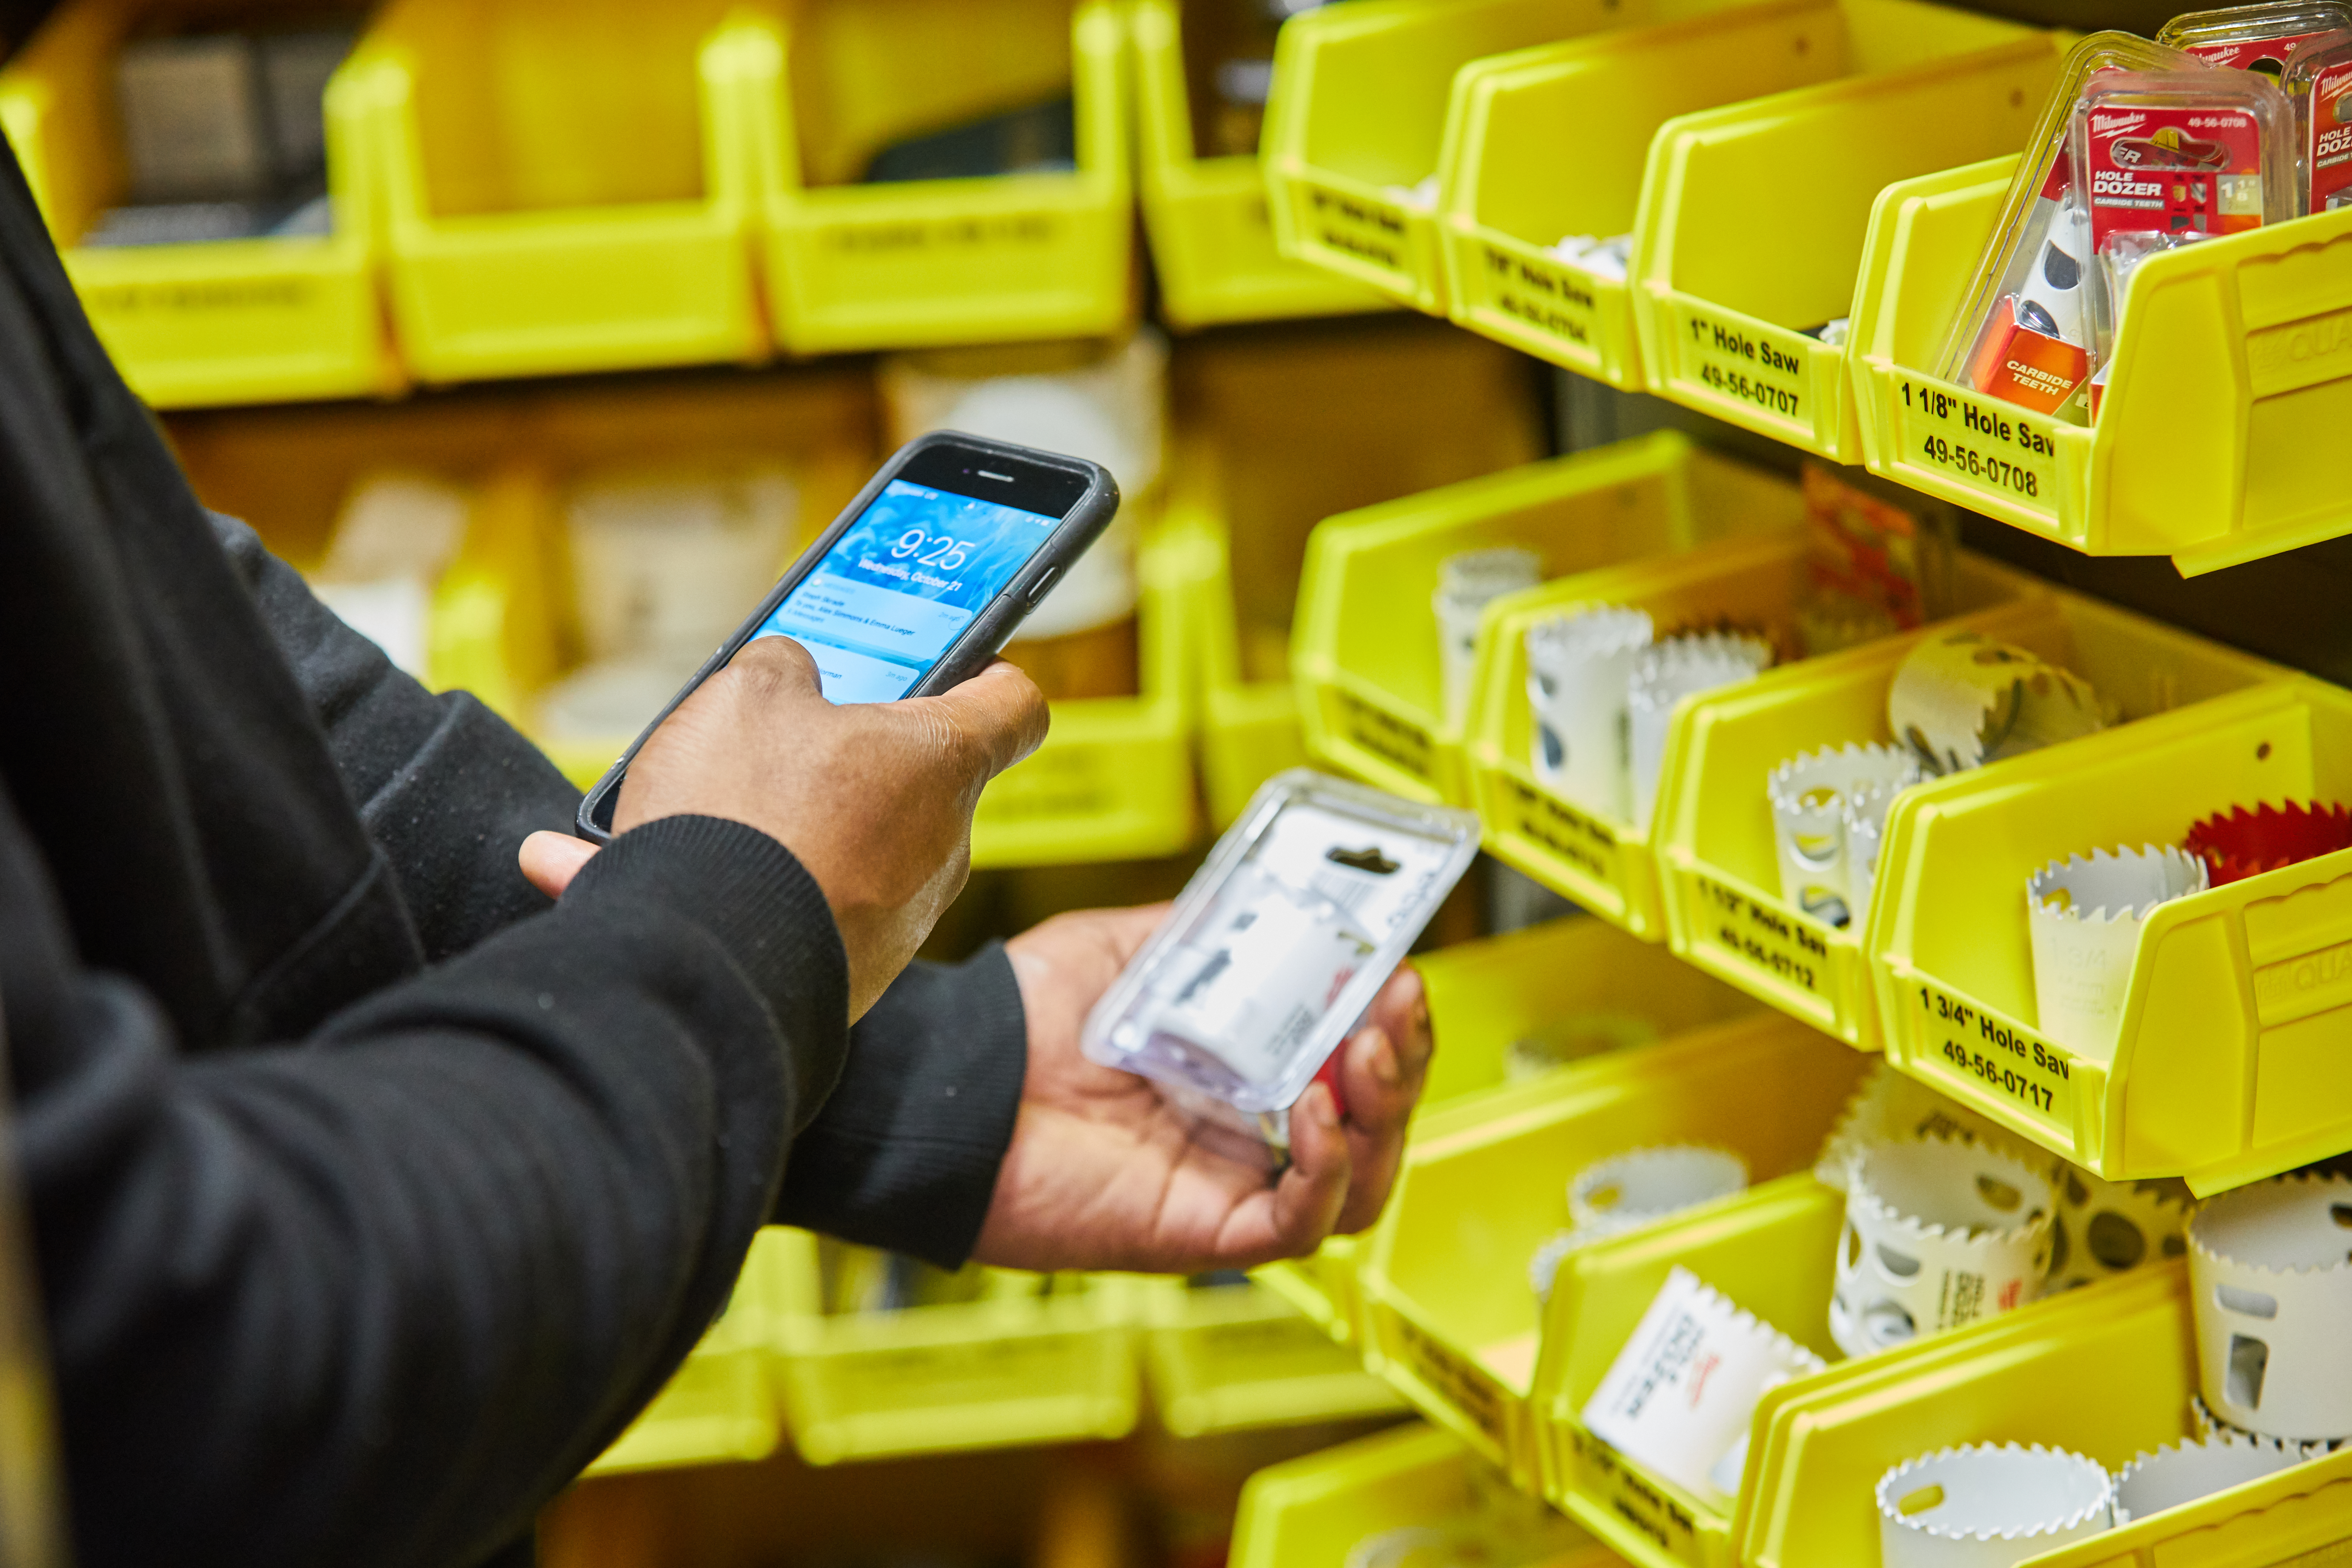 An inventory manager checks in item using mobile device